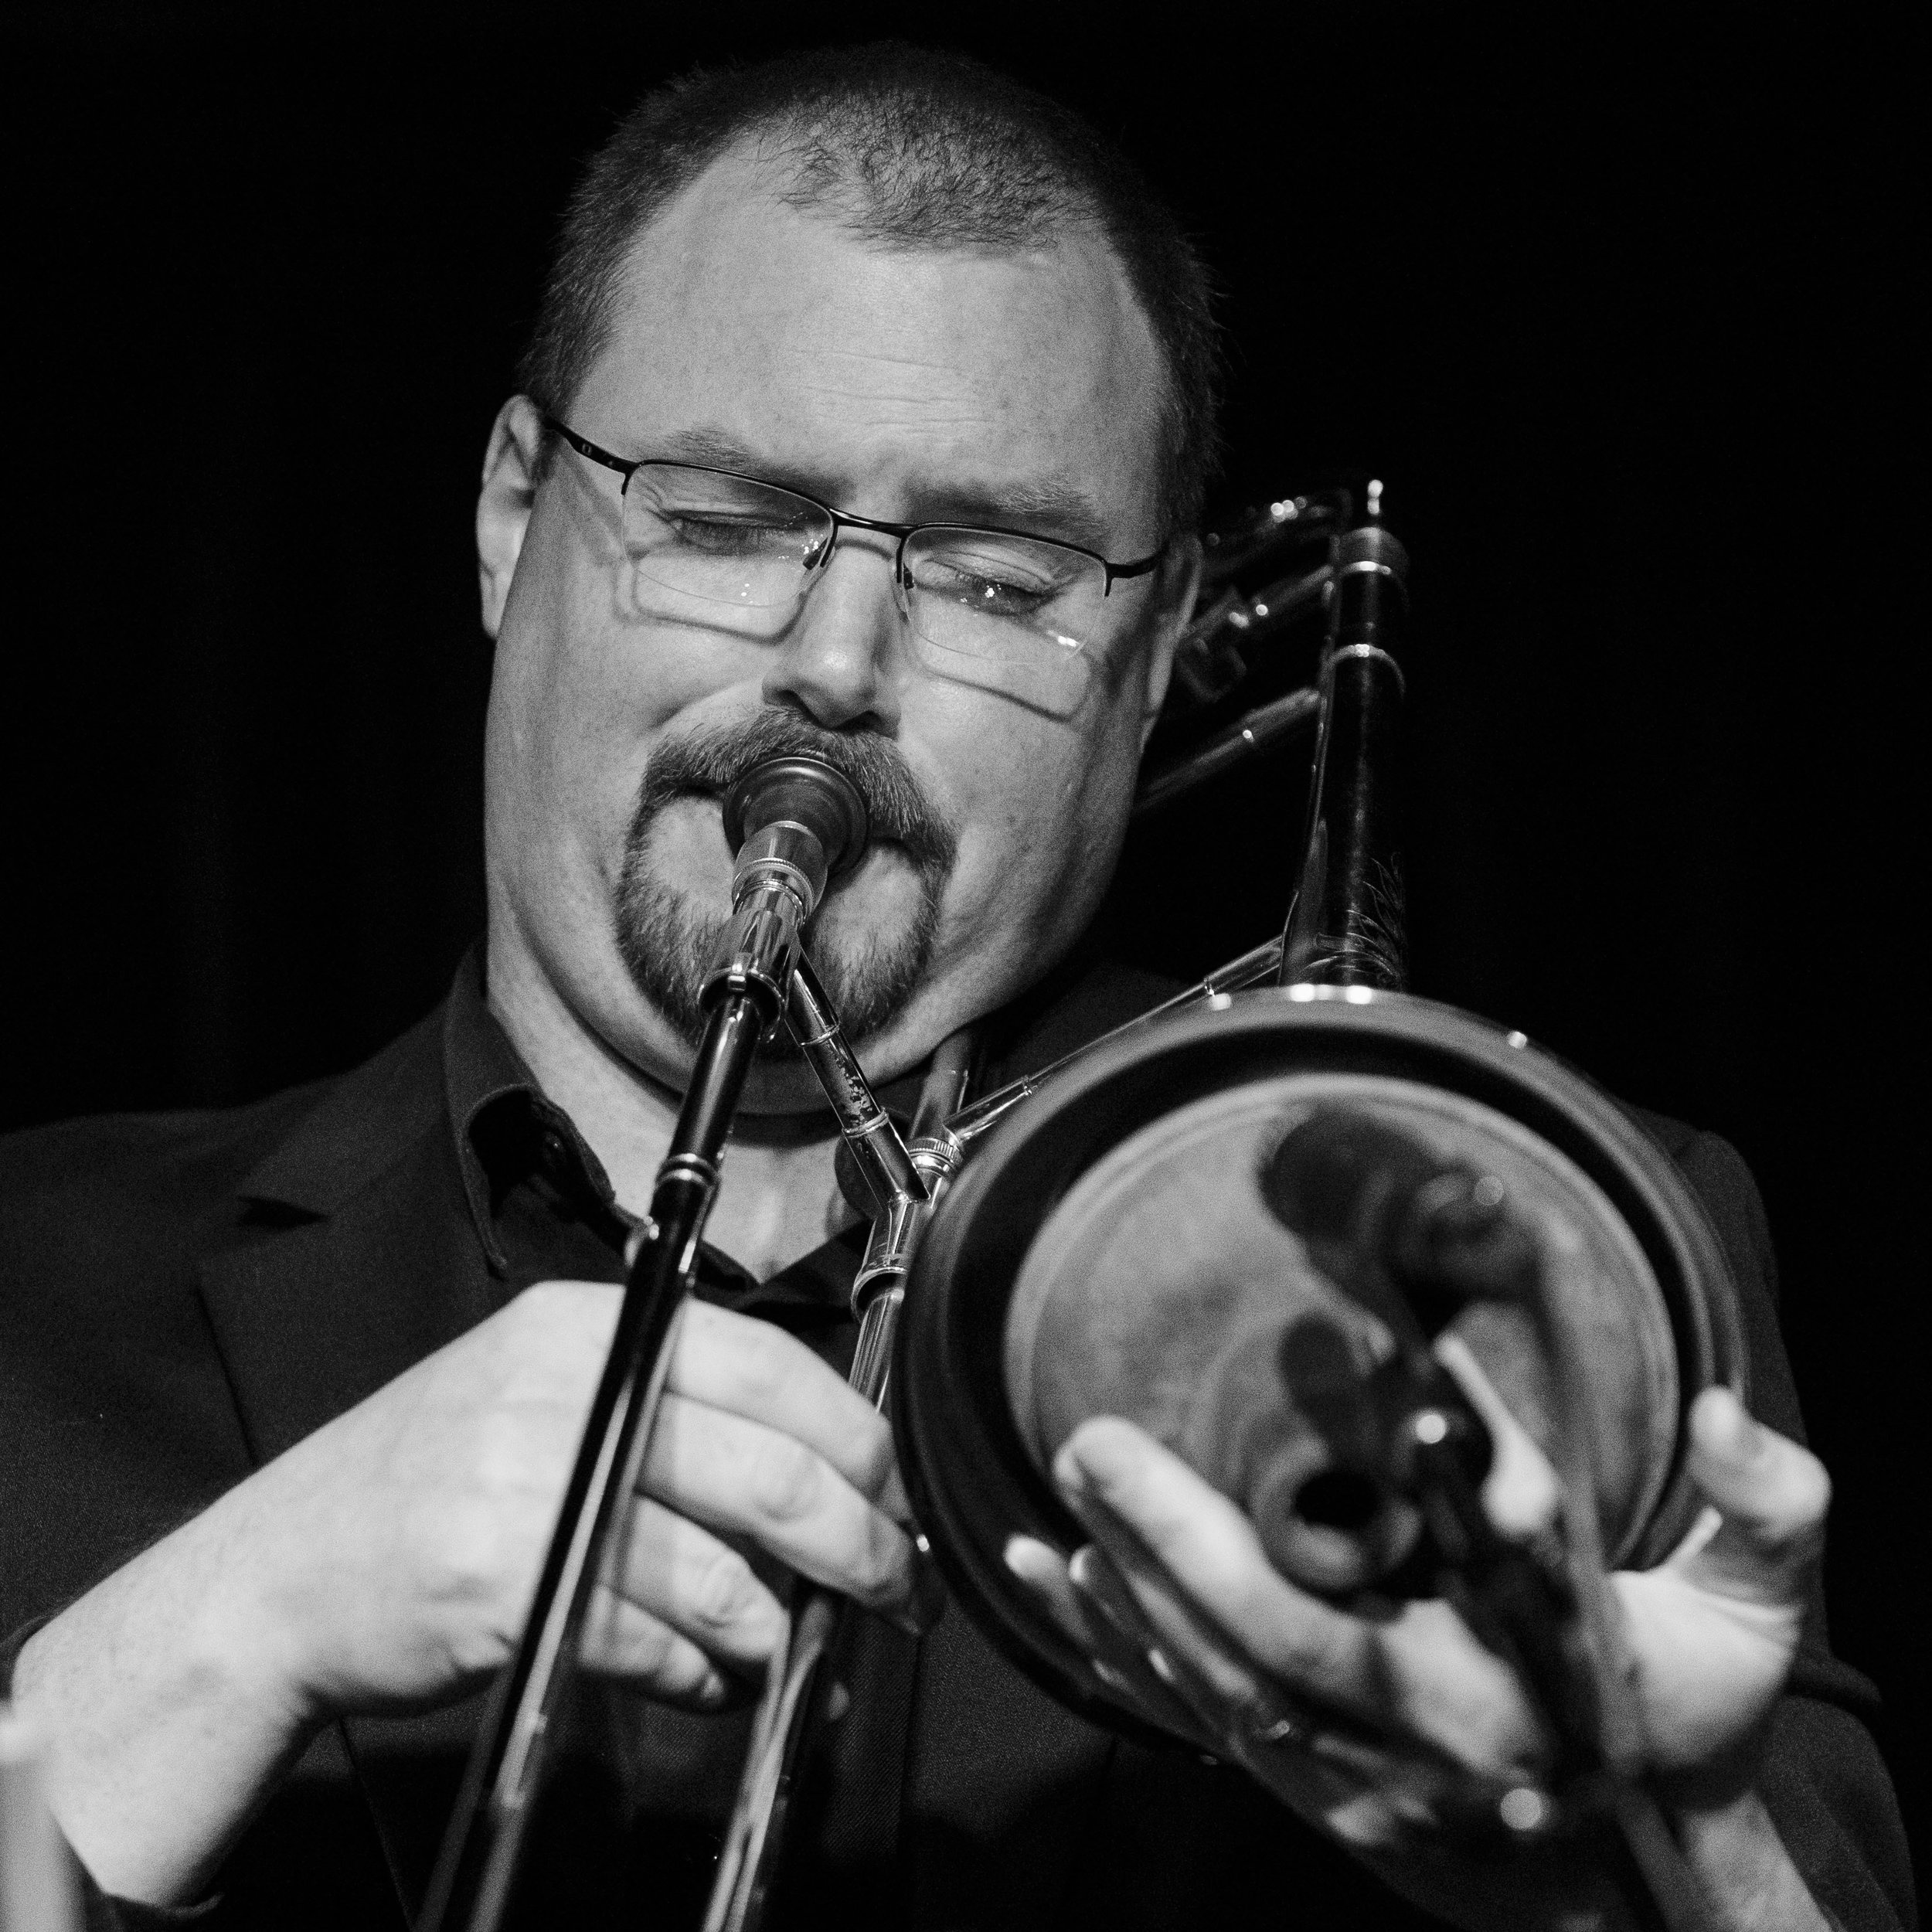 Matt Lennex on trombone with The Giants of Jazz at The Nash Jazz Club.